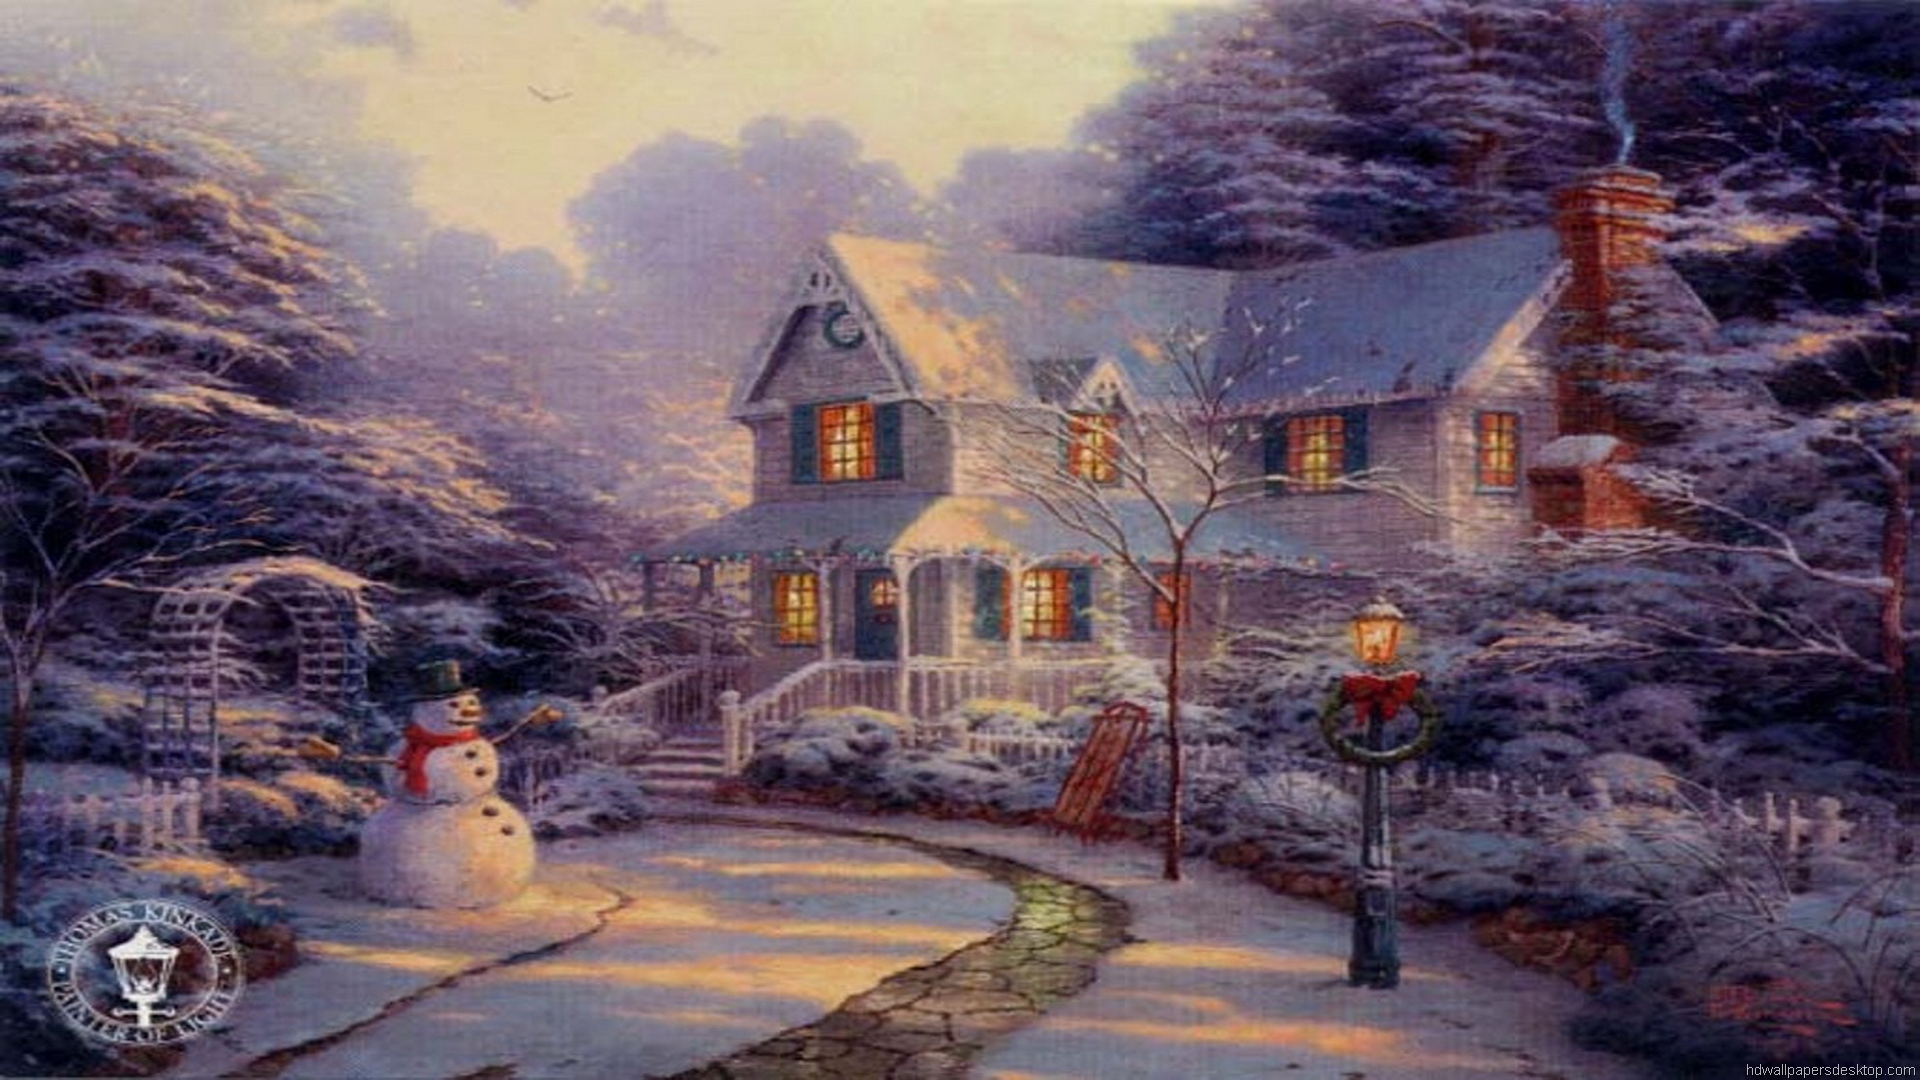 thomas kinkade wallpaper 1920x1080 - photo #16